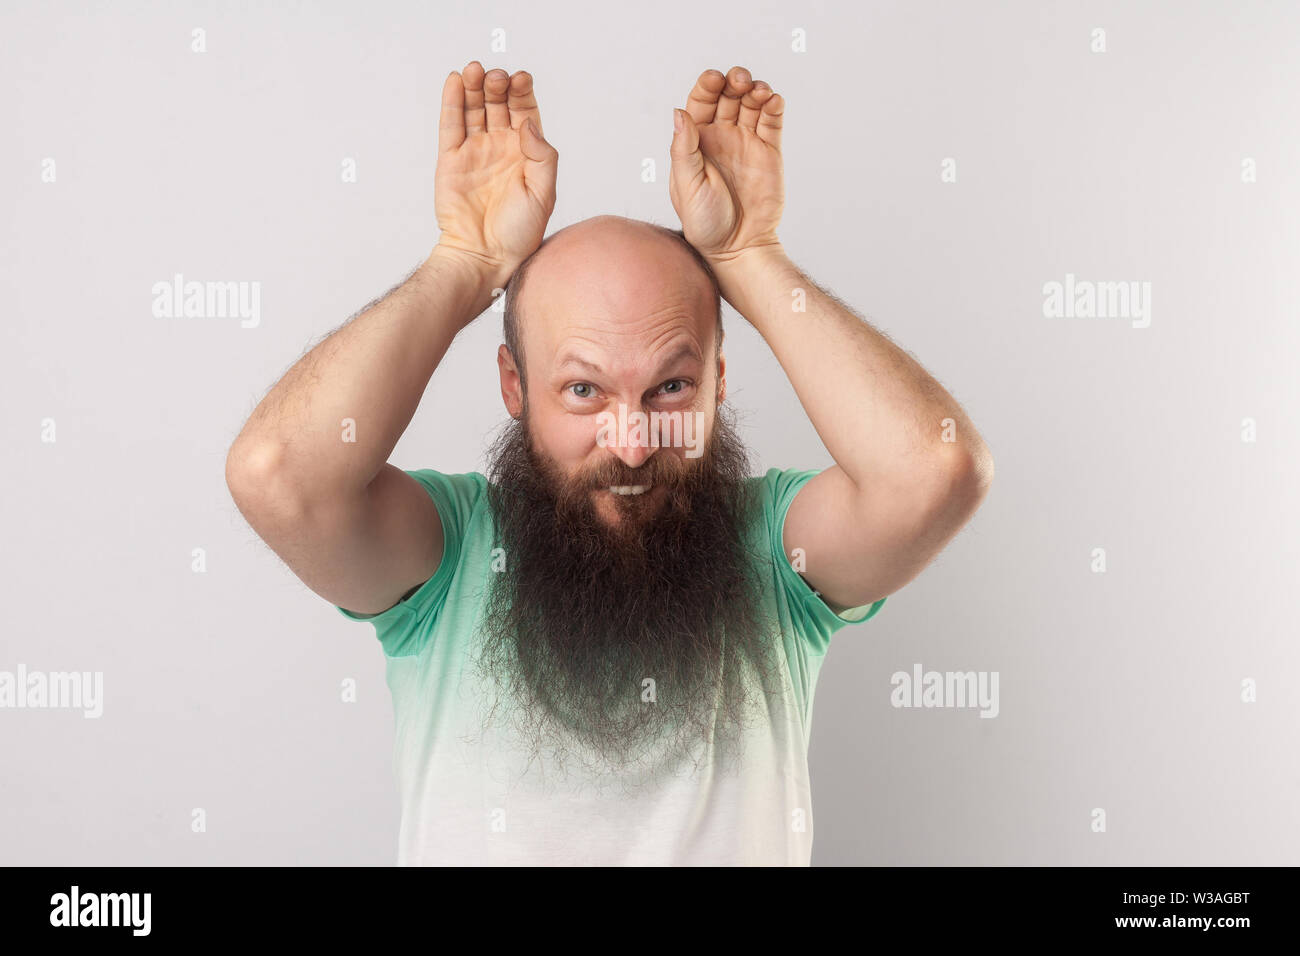 Portrait of funny crazy middle aged bald man with long beard in light green t-shirt standing with bunny ears gesture and looking at camera. indoor stu Stock Photo